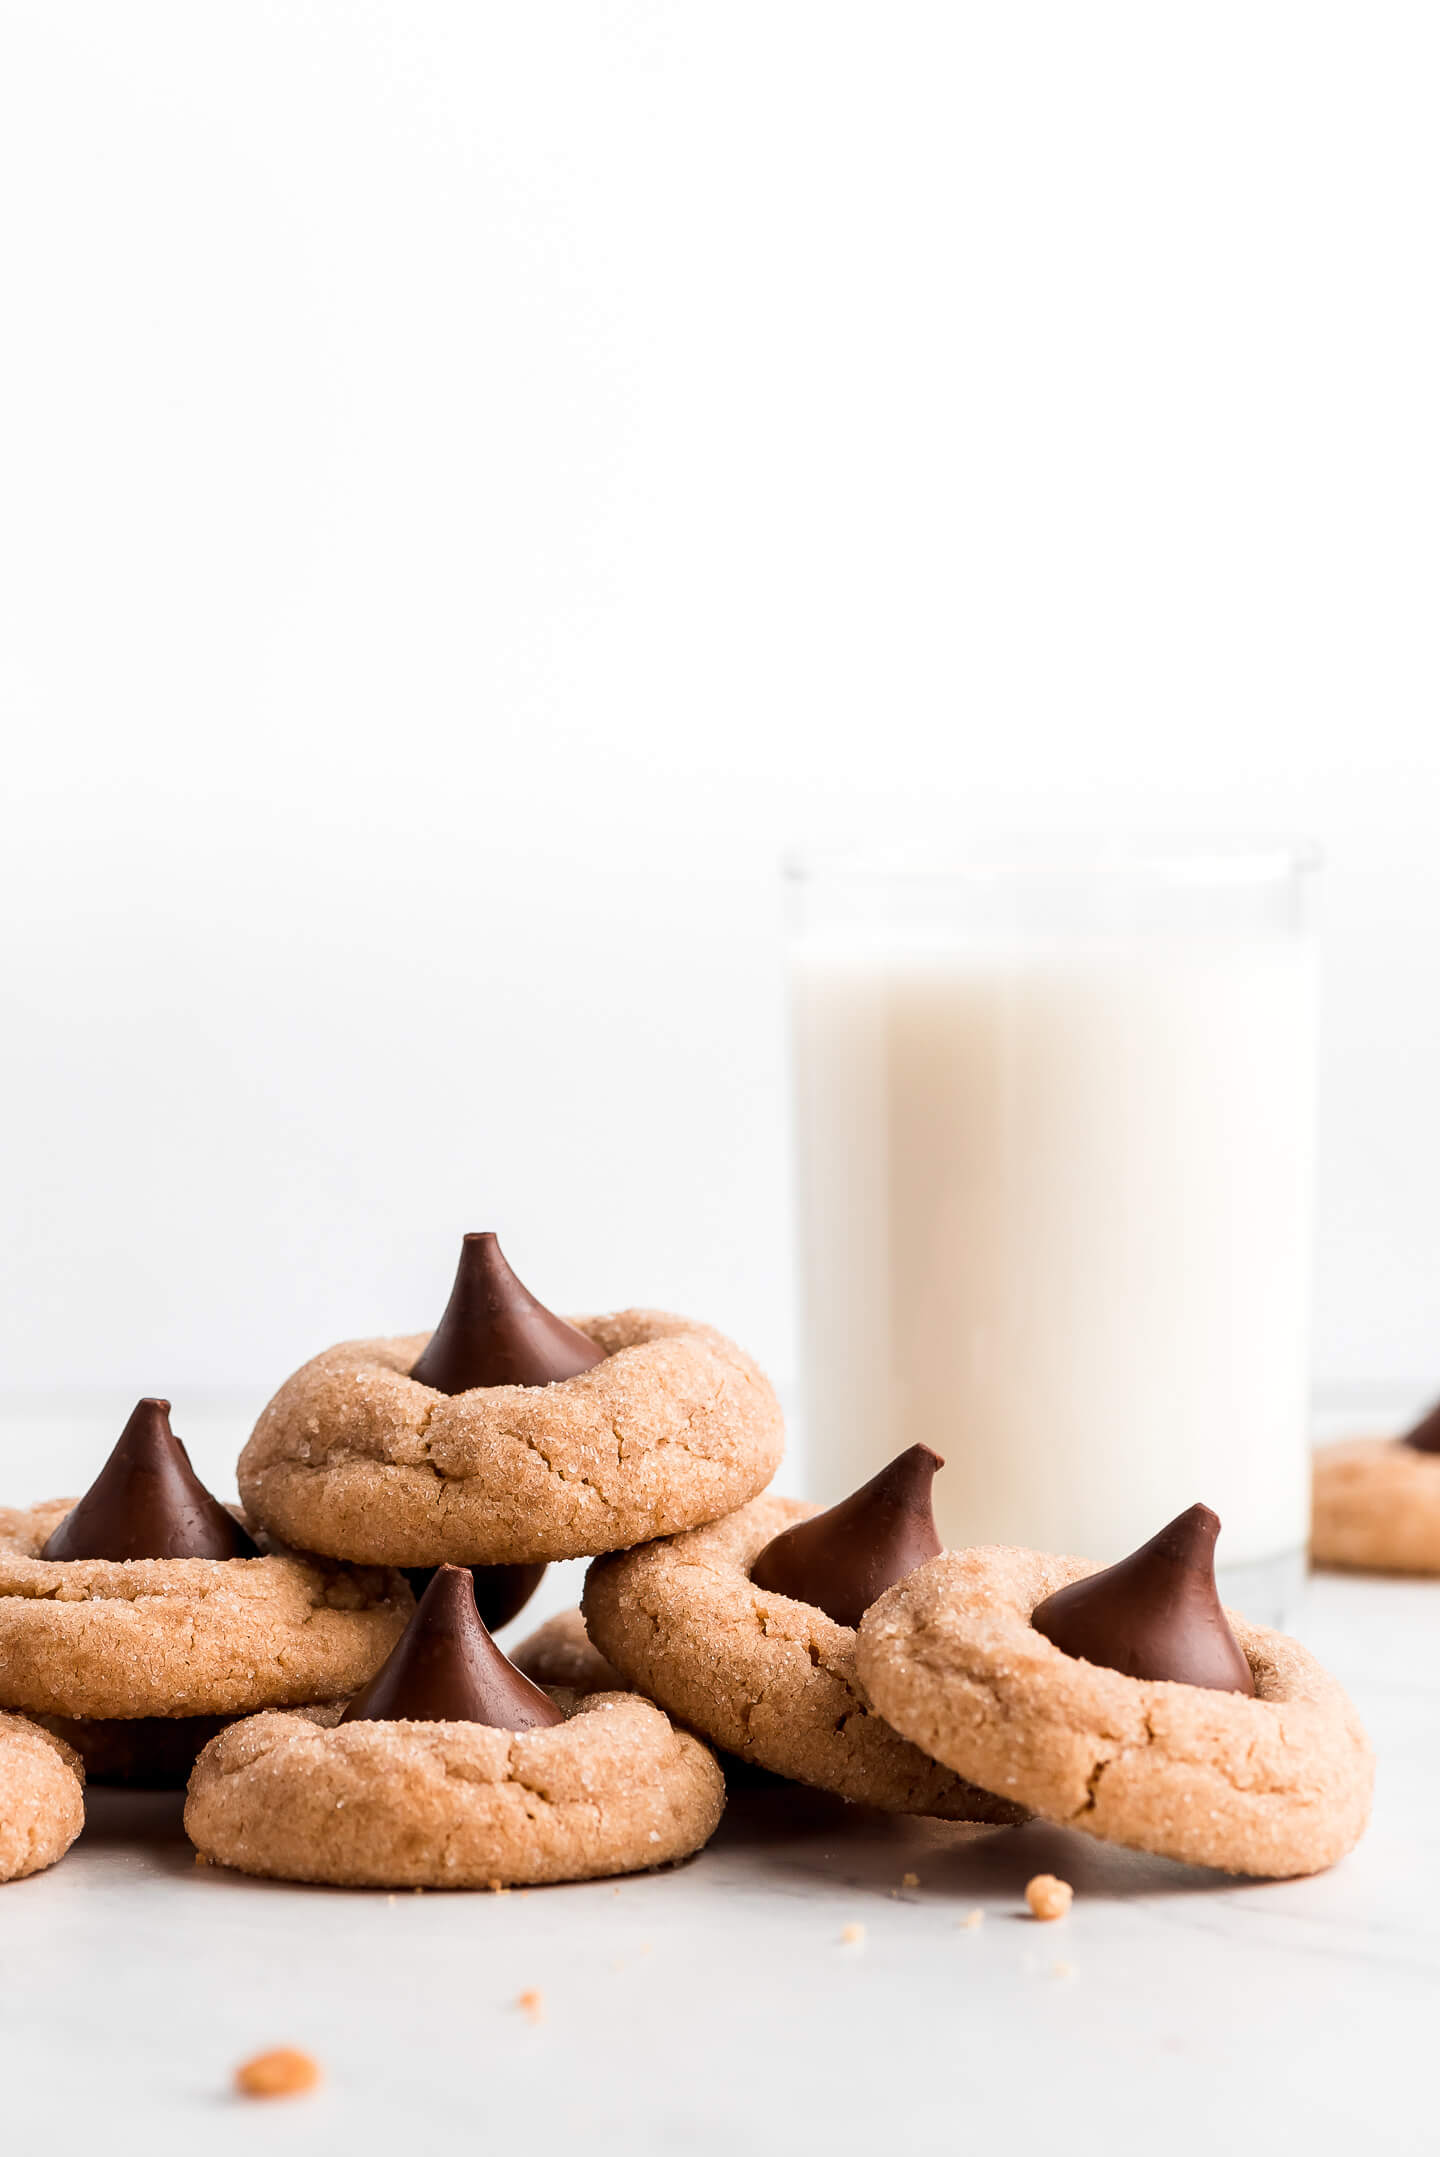 Peanut Butter Kiss cookies stacked in each other and a glass of milk.